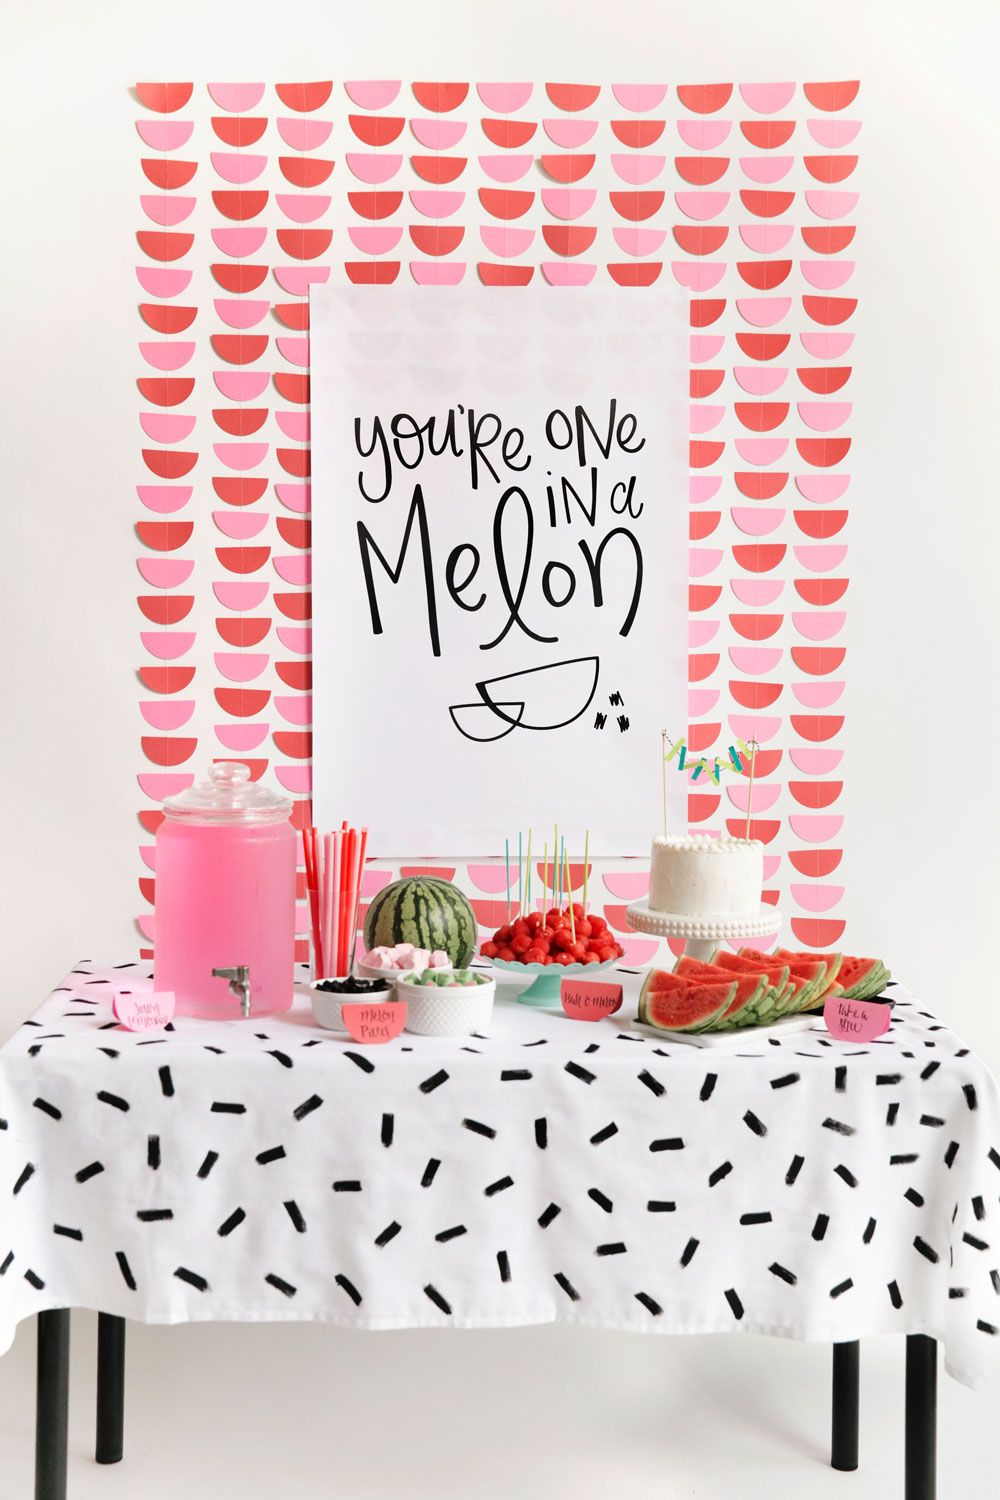 WATERMELON PARTY - Tell Love and ChocolateTell Love and Chocolate